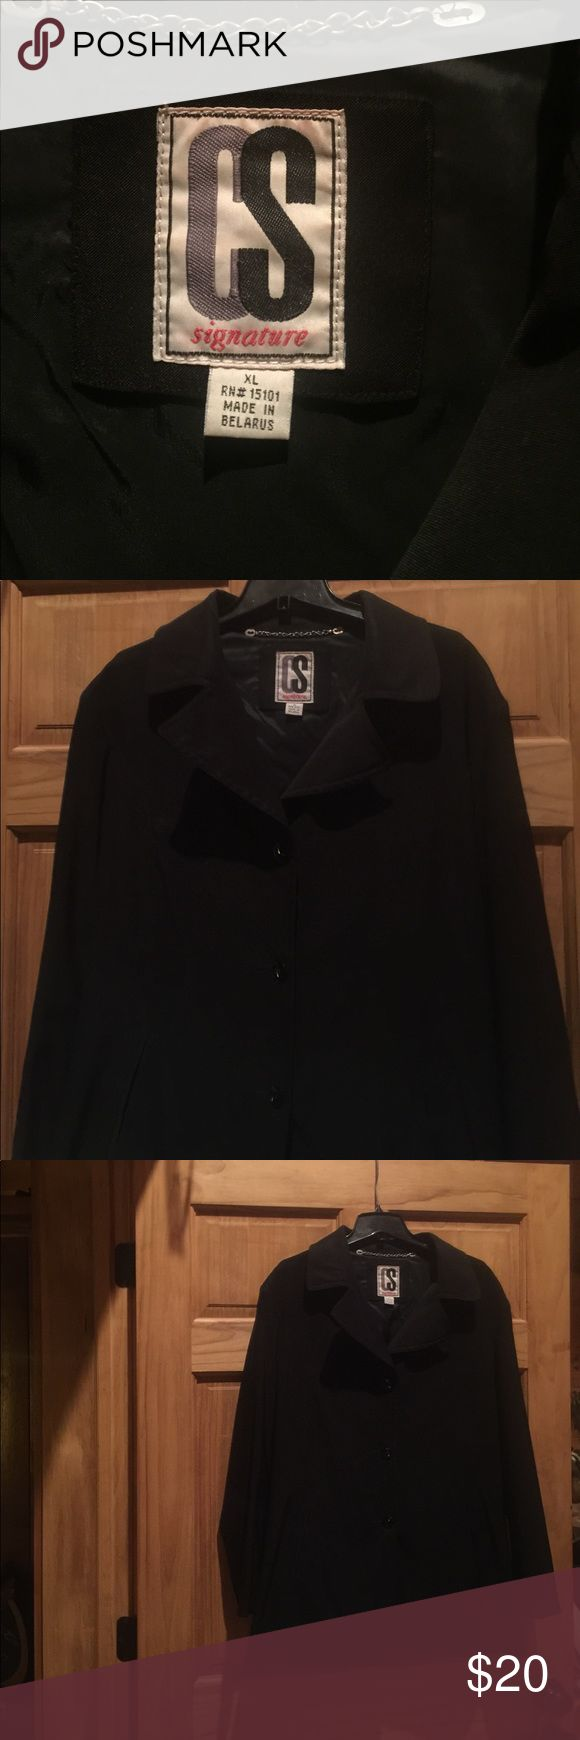 Black water resistant jacket Jacket is in very good condition can be worn with jeans or dress clothes. CS Jackets & Coats Trench Coats